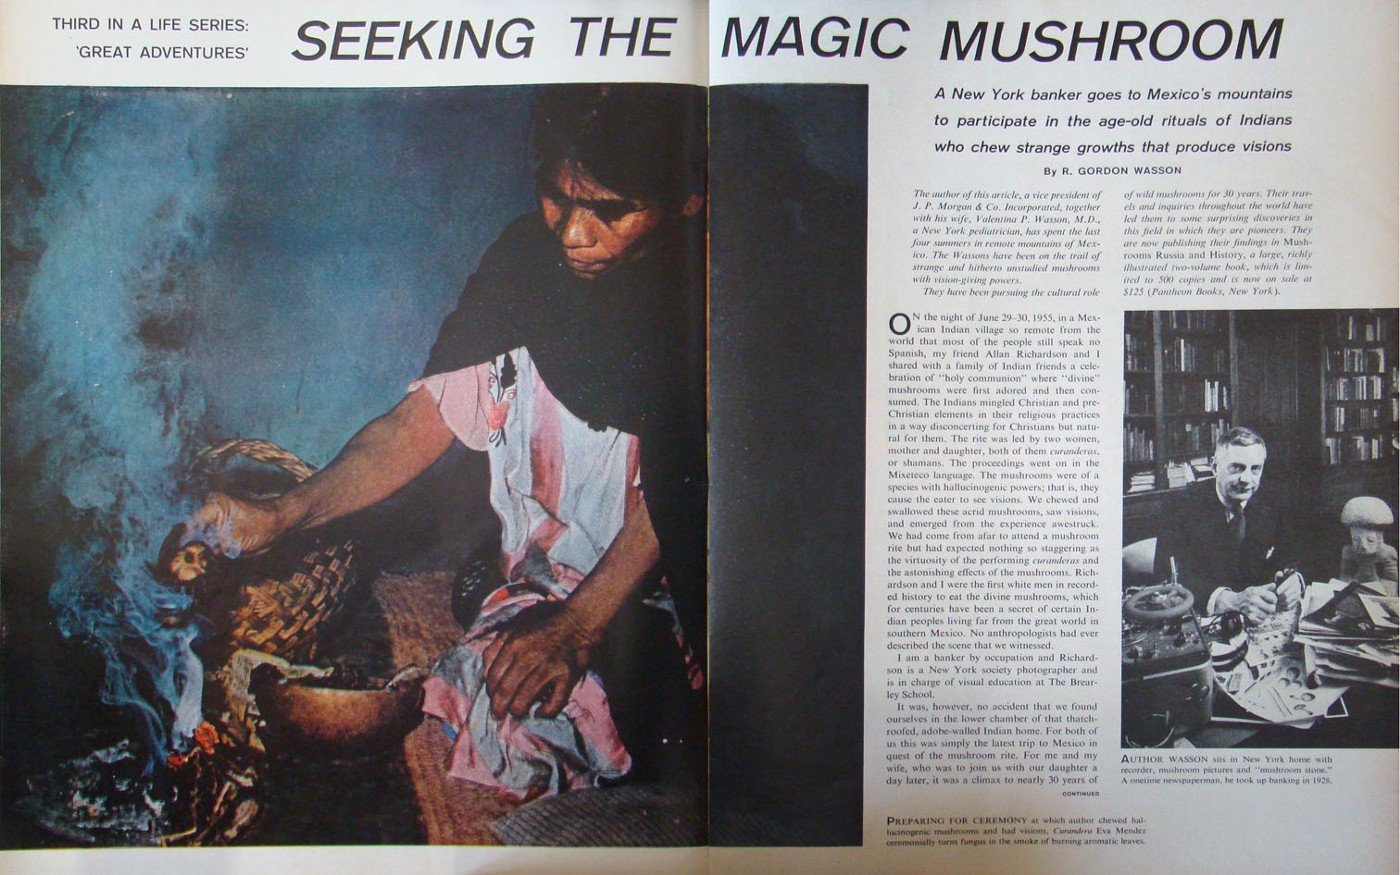 This Mexican medicine woman hipped America to magic mushrooms, with